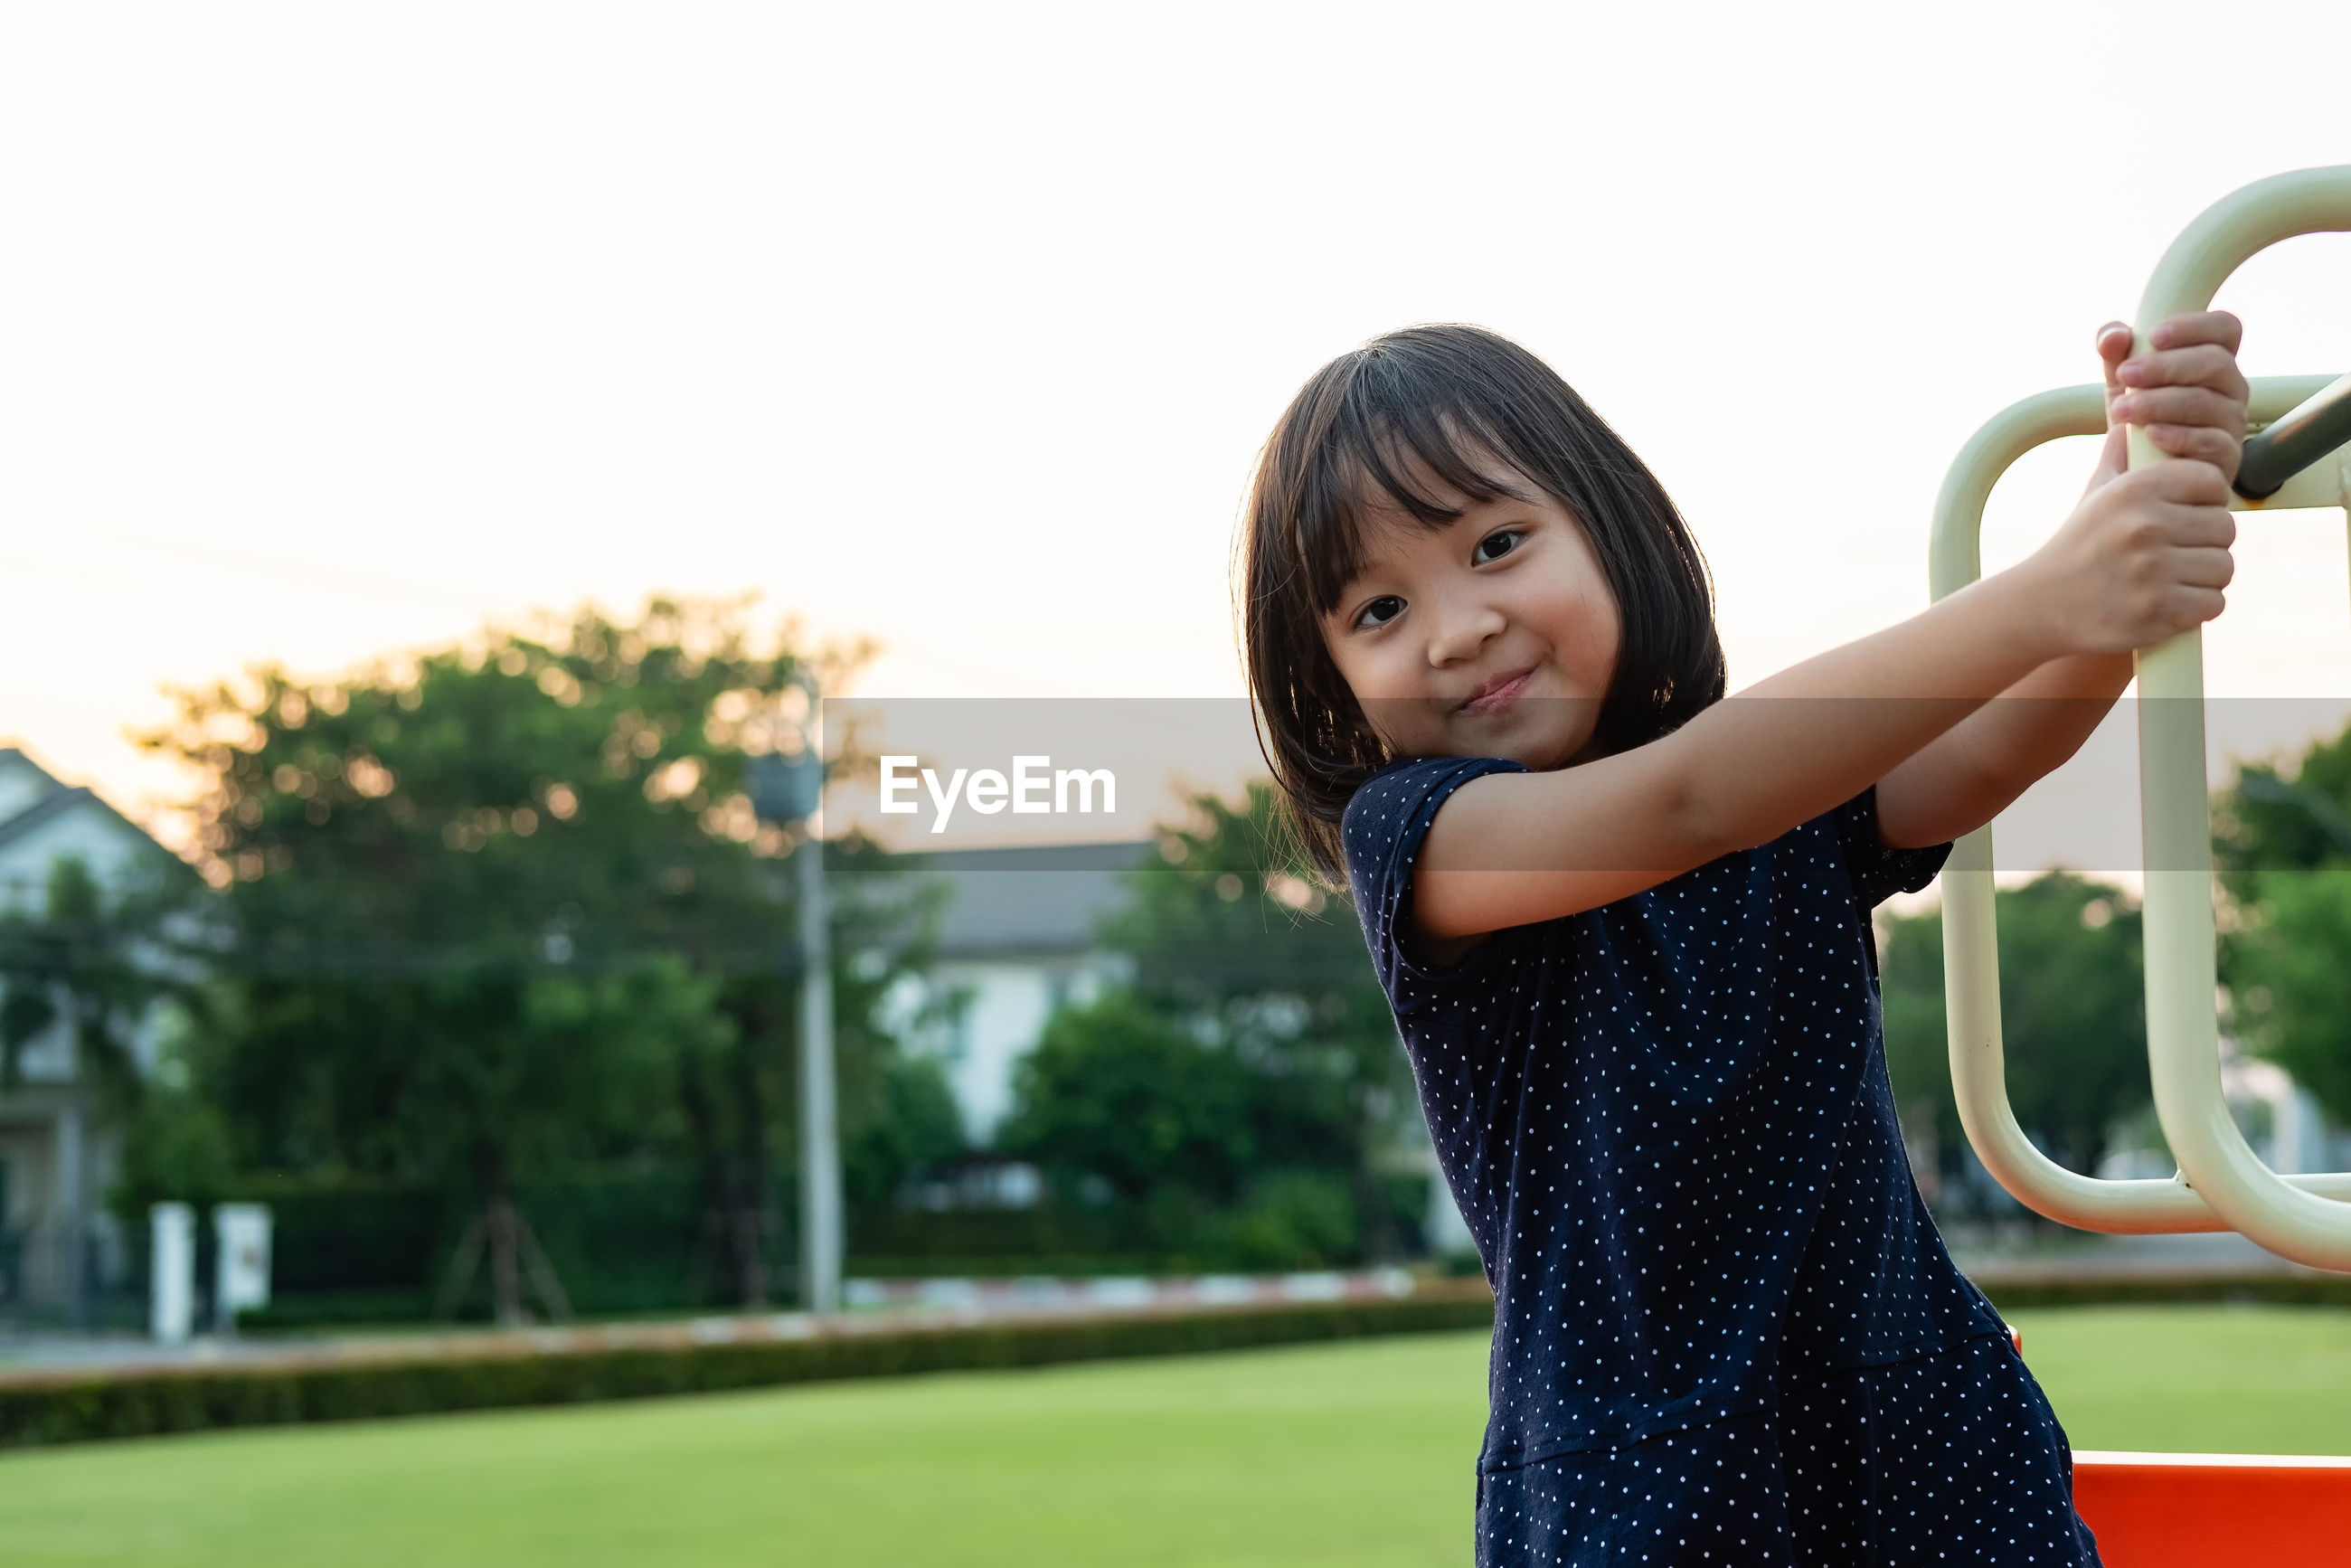 Portrait of smiling girl hanging on outdoor play equipment against clear sky in park